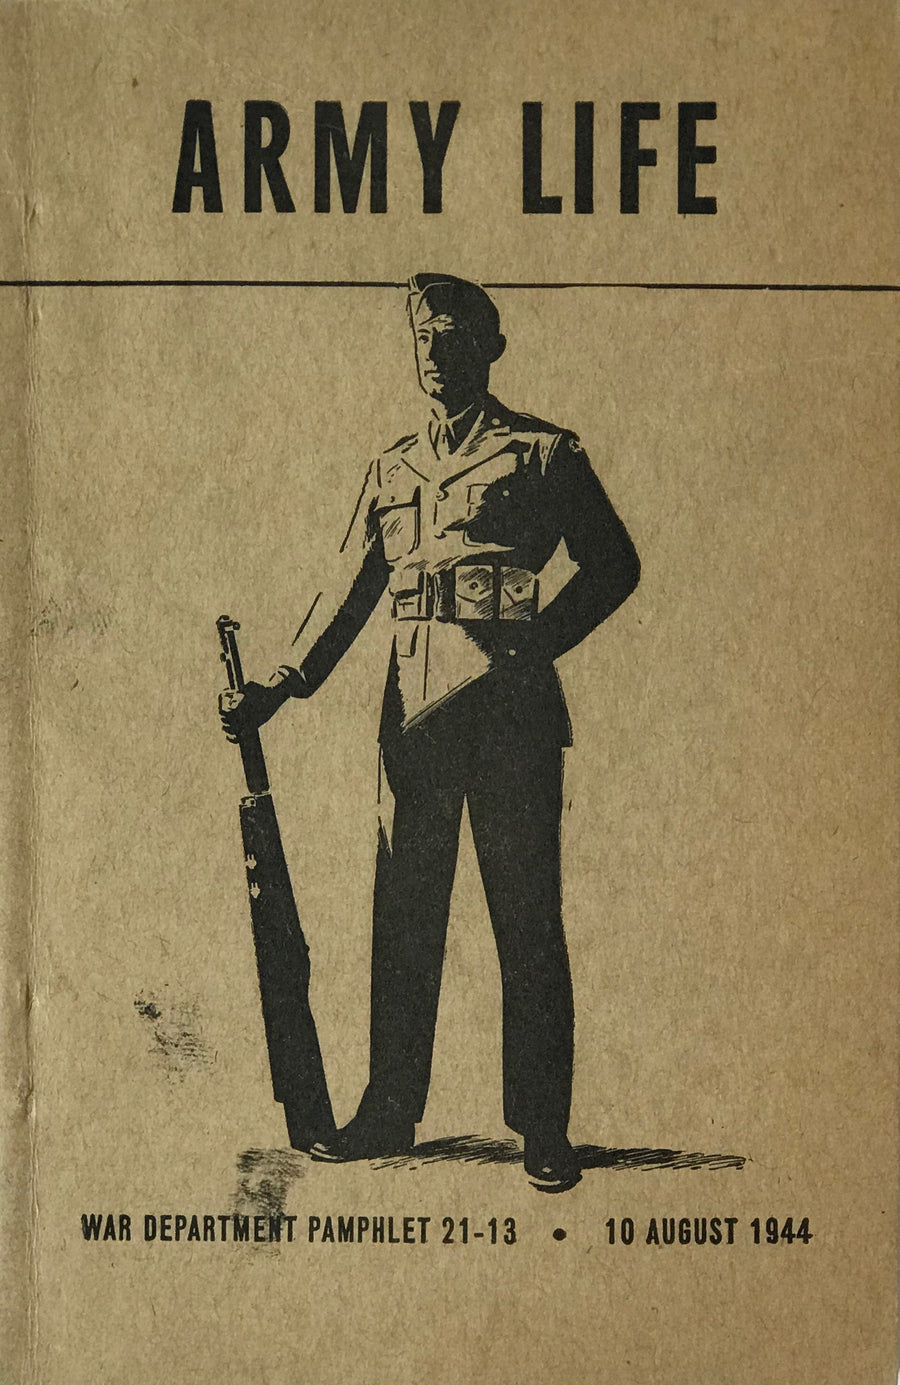 Army Life Booklet, August 1944